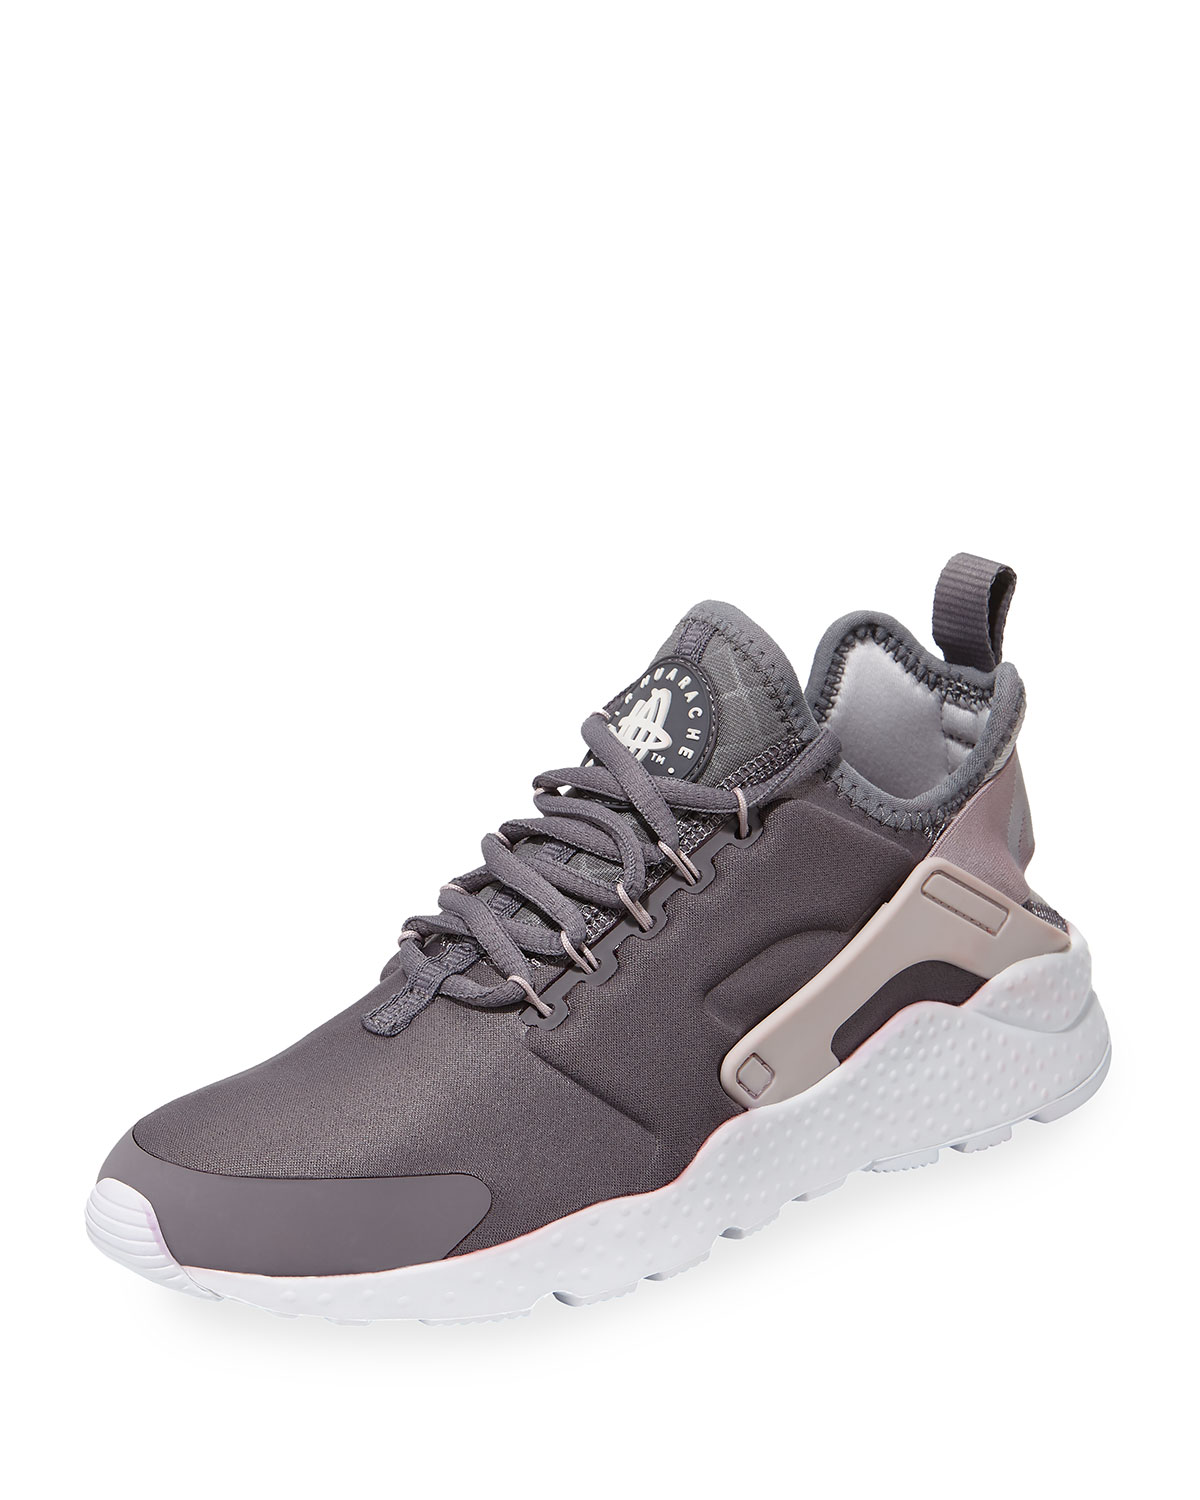 promo code 386f7 d923e Nike Women s Air Huarache Run Ultra Sneakers